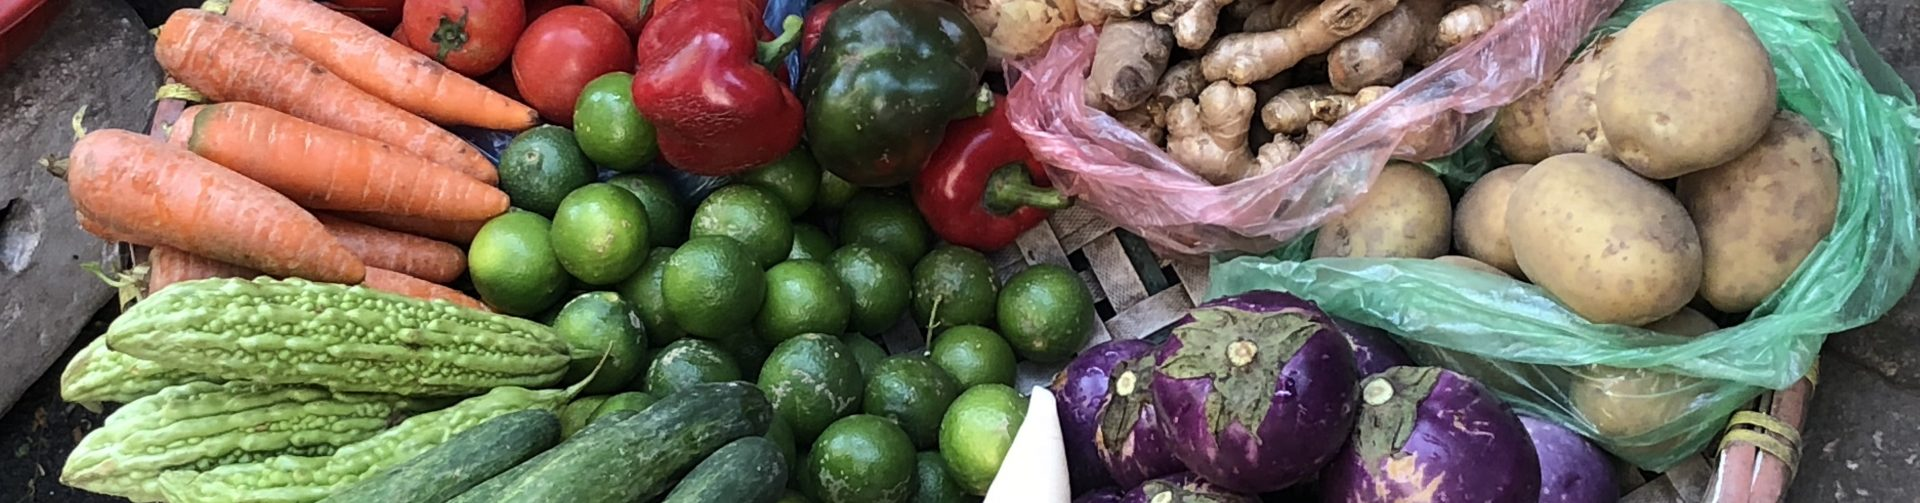 Sustainable, Healthy Diets for All Will Require a Food Systems Transformation